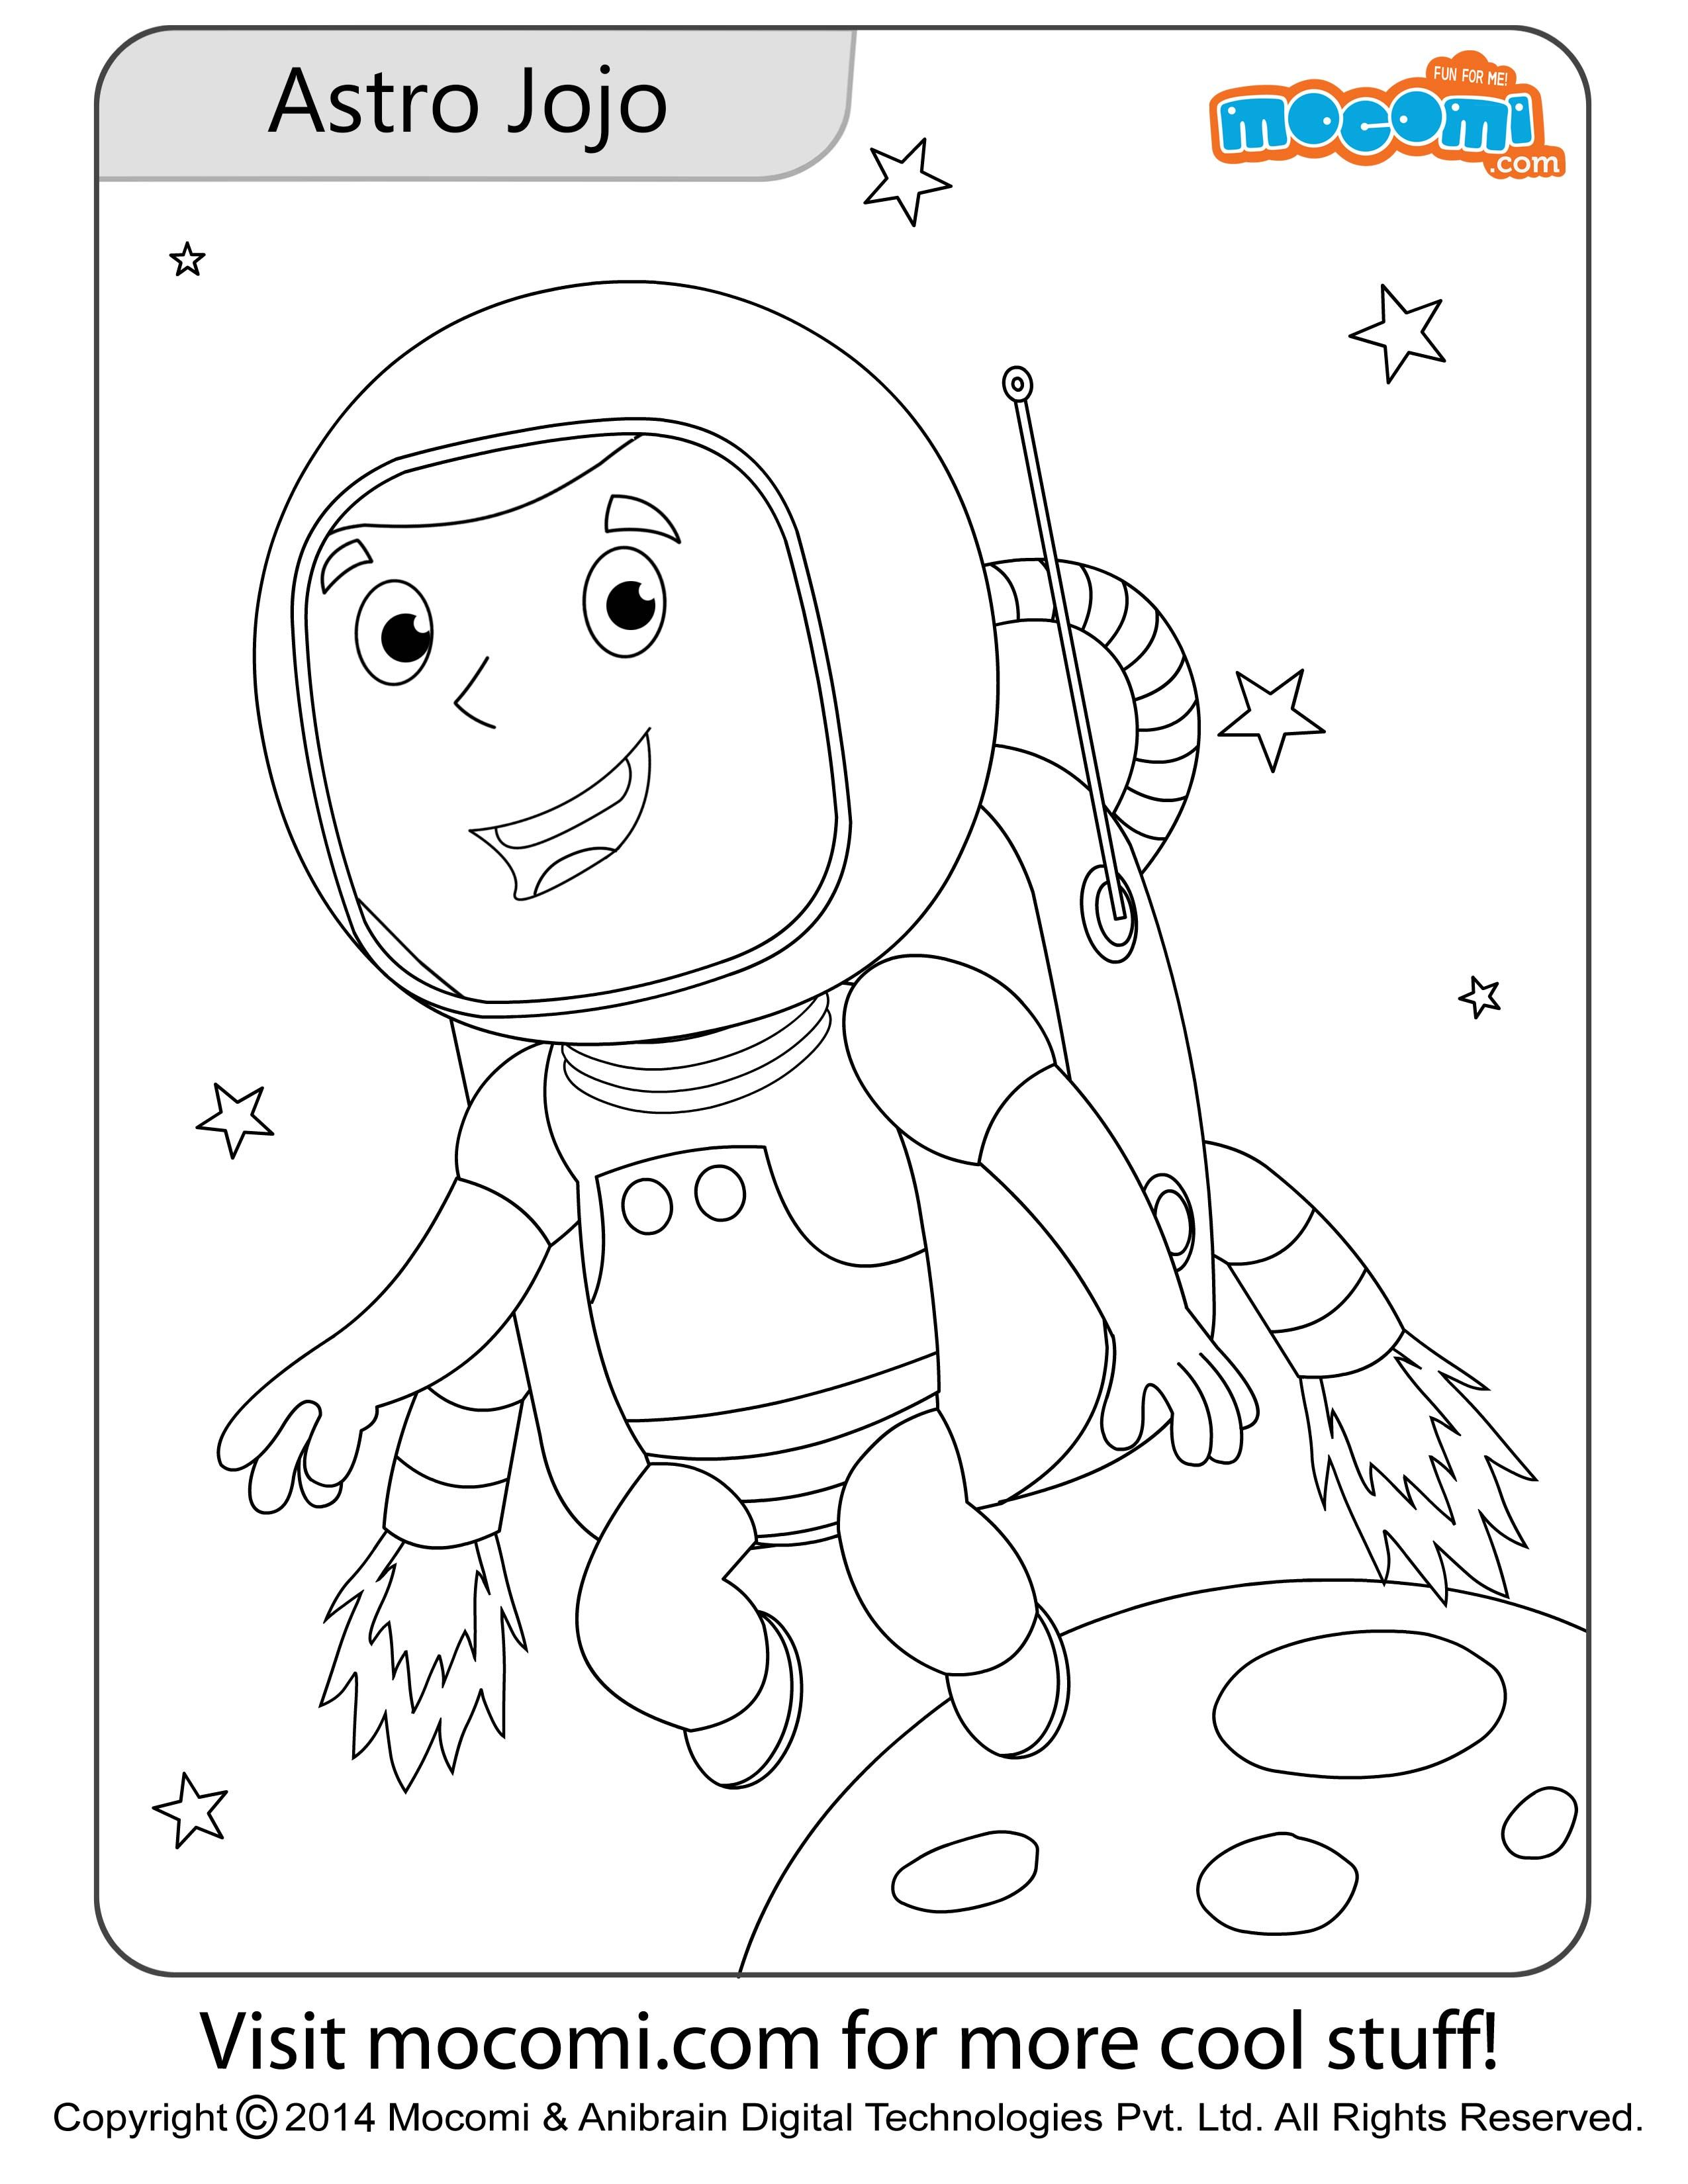 astronaut jojo online jojo colouring page for kids free printable coloring pages for a variety of themes that you can print out and color at home